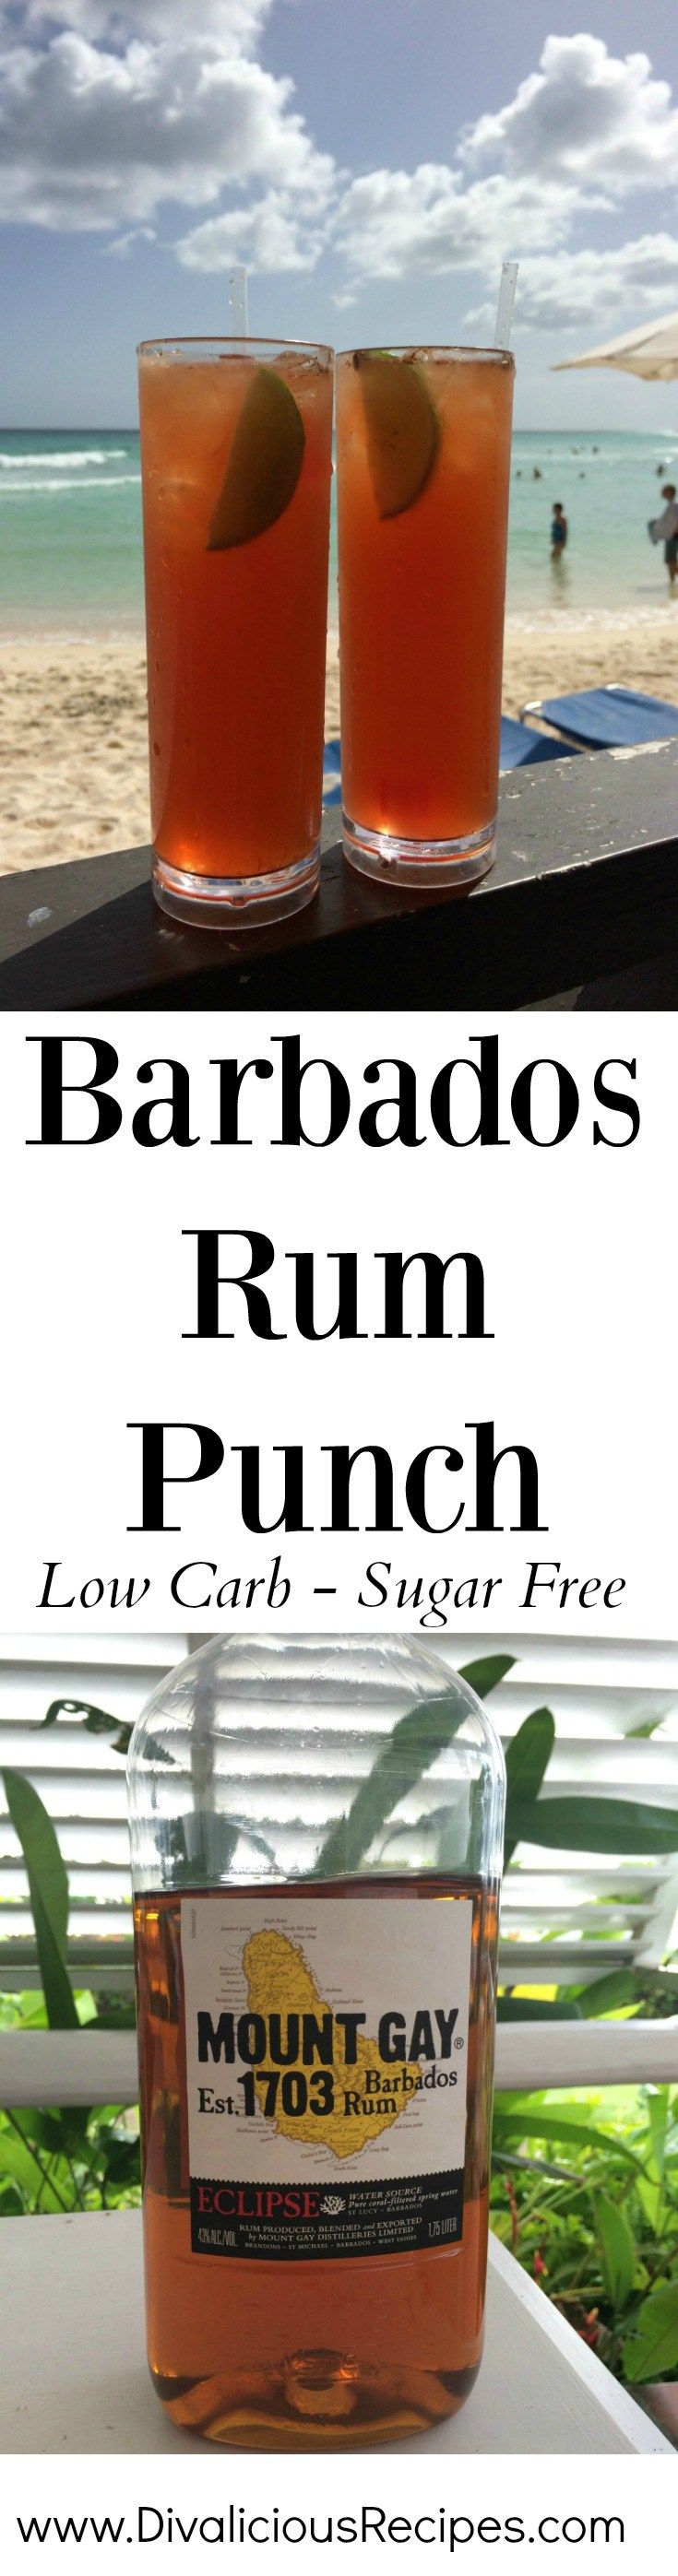 This is my version of a sugar free Barbados rum punch.   It was one of our favourite drinks when we lived there but unfortunately it is full of sugar.